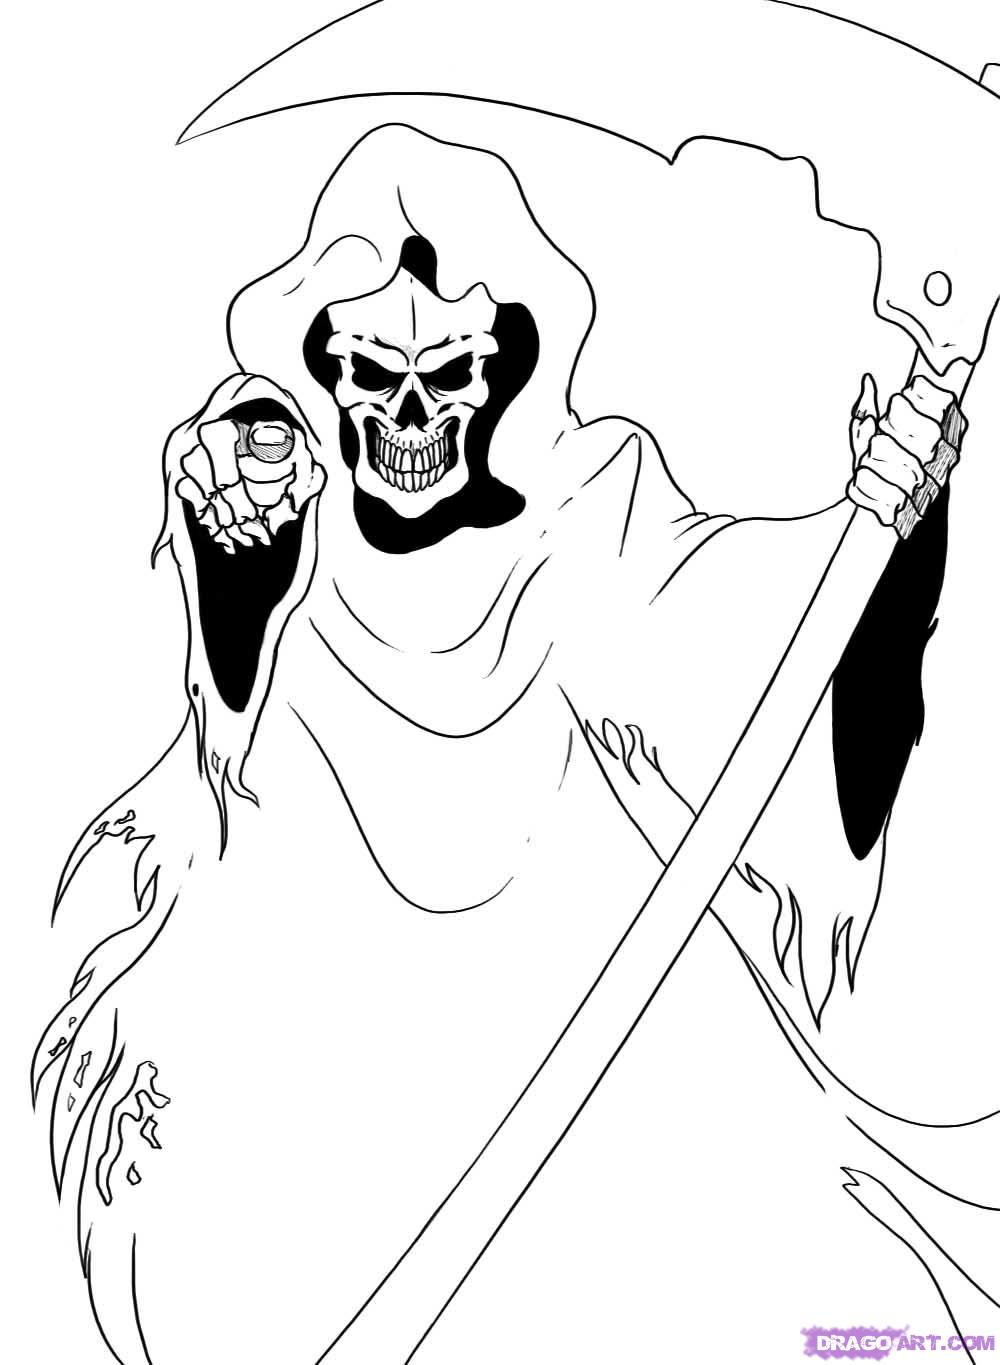 how to draw the grim reaper grim reaper drawing photo drawing skill how grim reaper to the draw